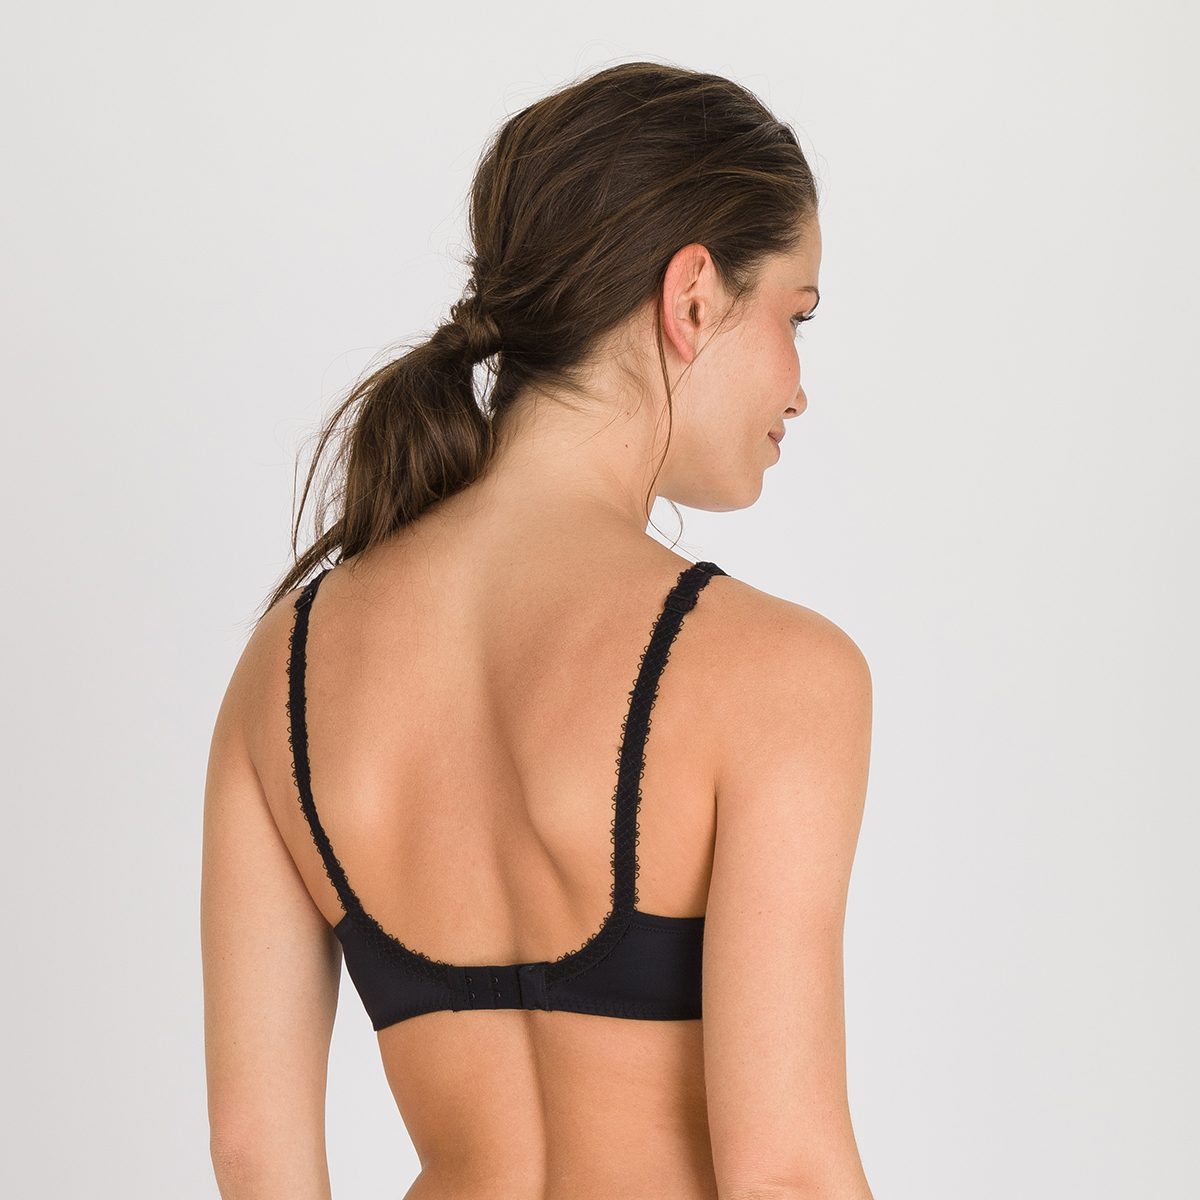 Spacer bra in black - Flower Elegance, , PLAYTEX